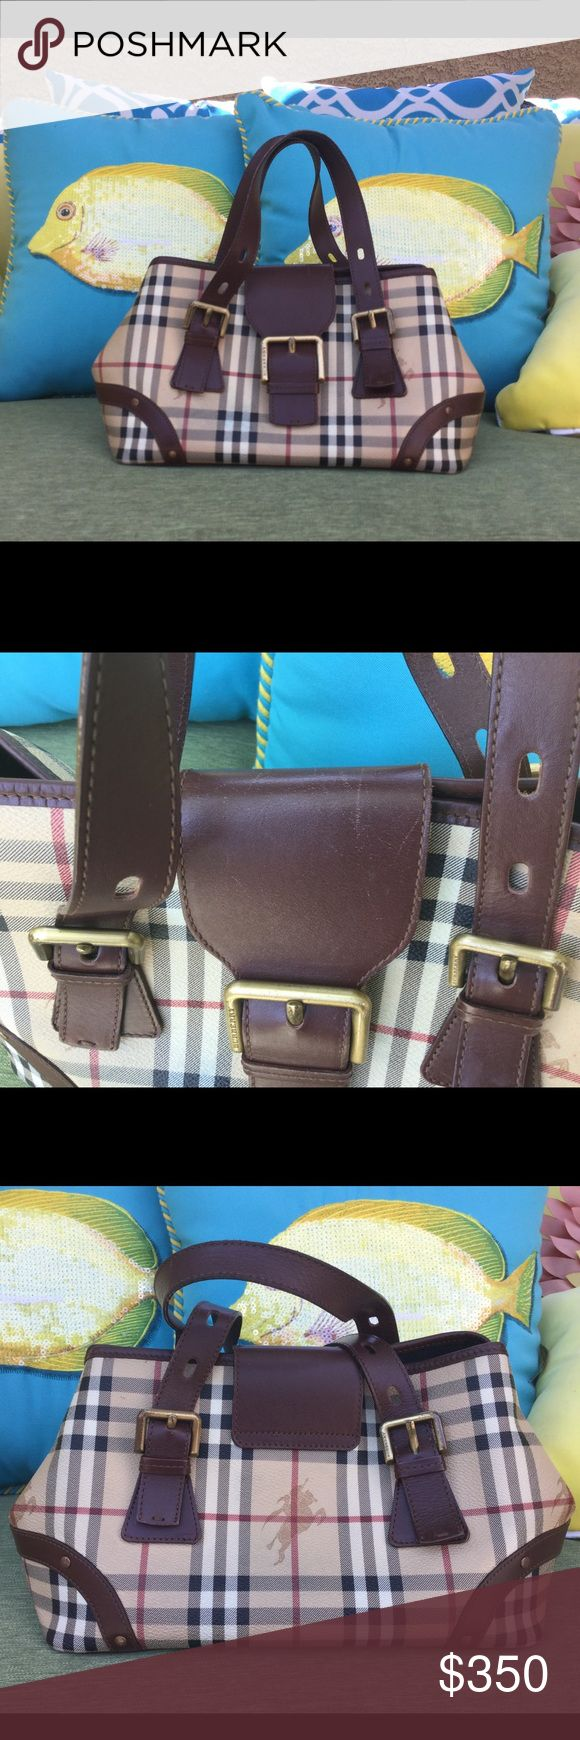 ♥️Burberry classic Haymarket check bag 💯 Crafted from Burberry's Iconic Haymarket check patterned canvas,the exterior features contrasting brown leather handles.It is Secured with flap with gold tone buckles. Interior lining black Fabric & has zip pocket. Used wear on hardware see pictures. No stain or ink.top of flap has scratches in between the handles not noticeable. Price reflects flaws 💯Authentic medium bag  12 wide 7 1/2 tall must Have Burberry Bags Satchels